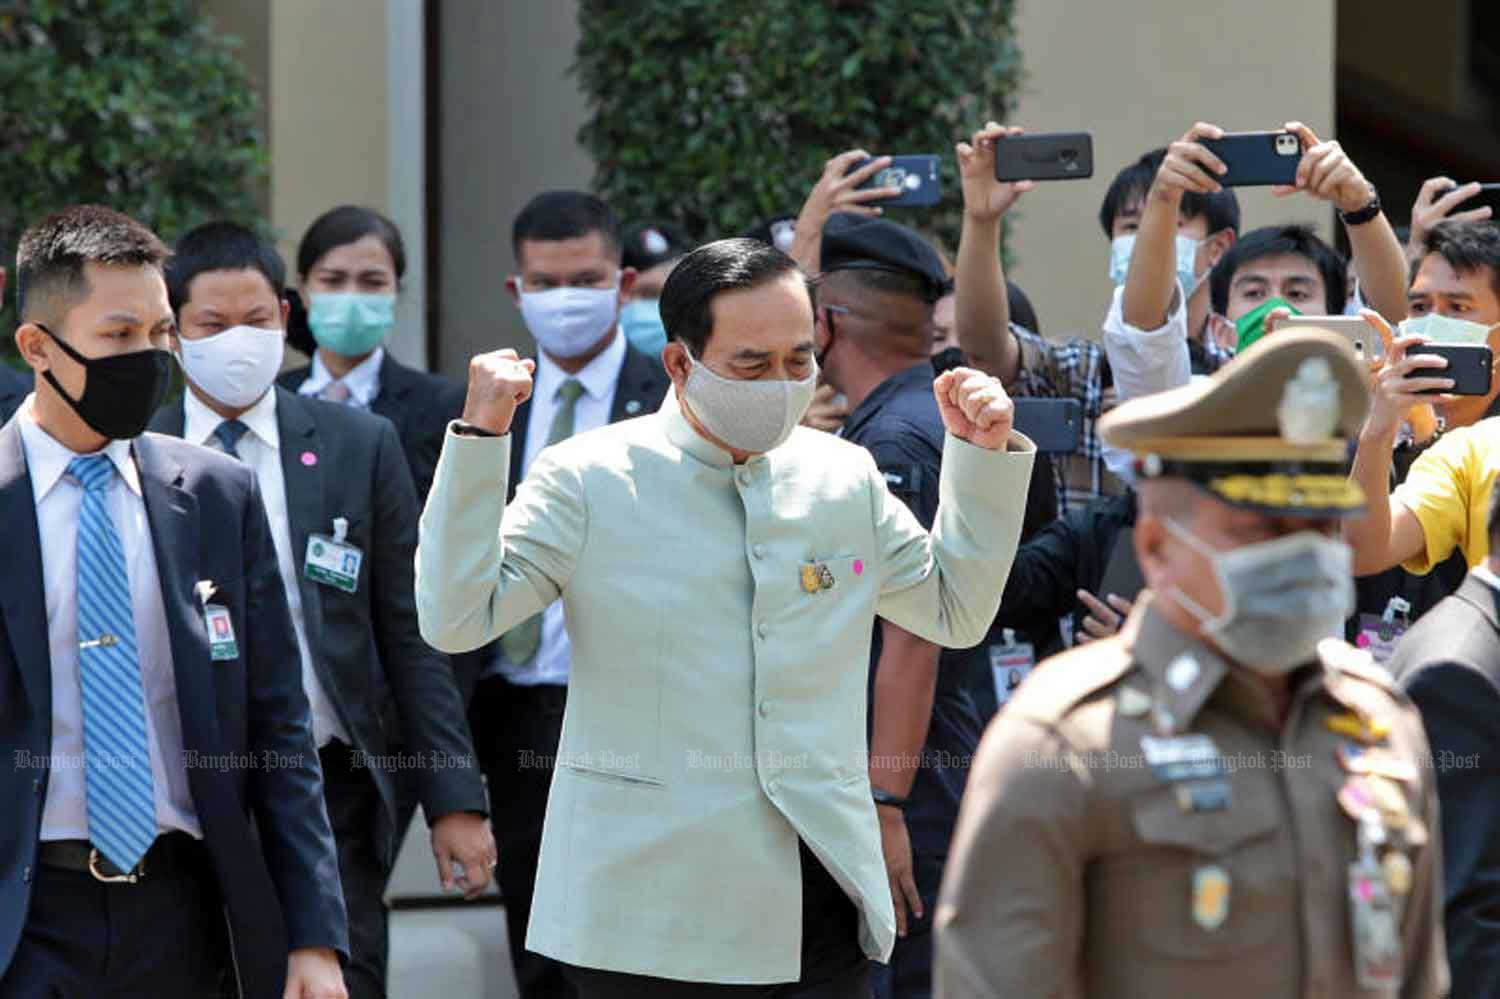 Prime Minister Prayut Chan-o-cha gestures after announcing the government's plan to declare an emergency and impose measures to control the Covid-19 pandemic, at Government House in Bangkok on Tuesday. (Photo: Chanat Katanyu)